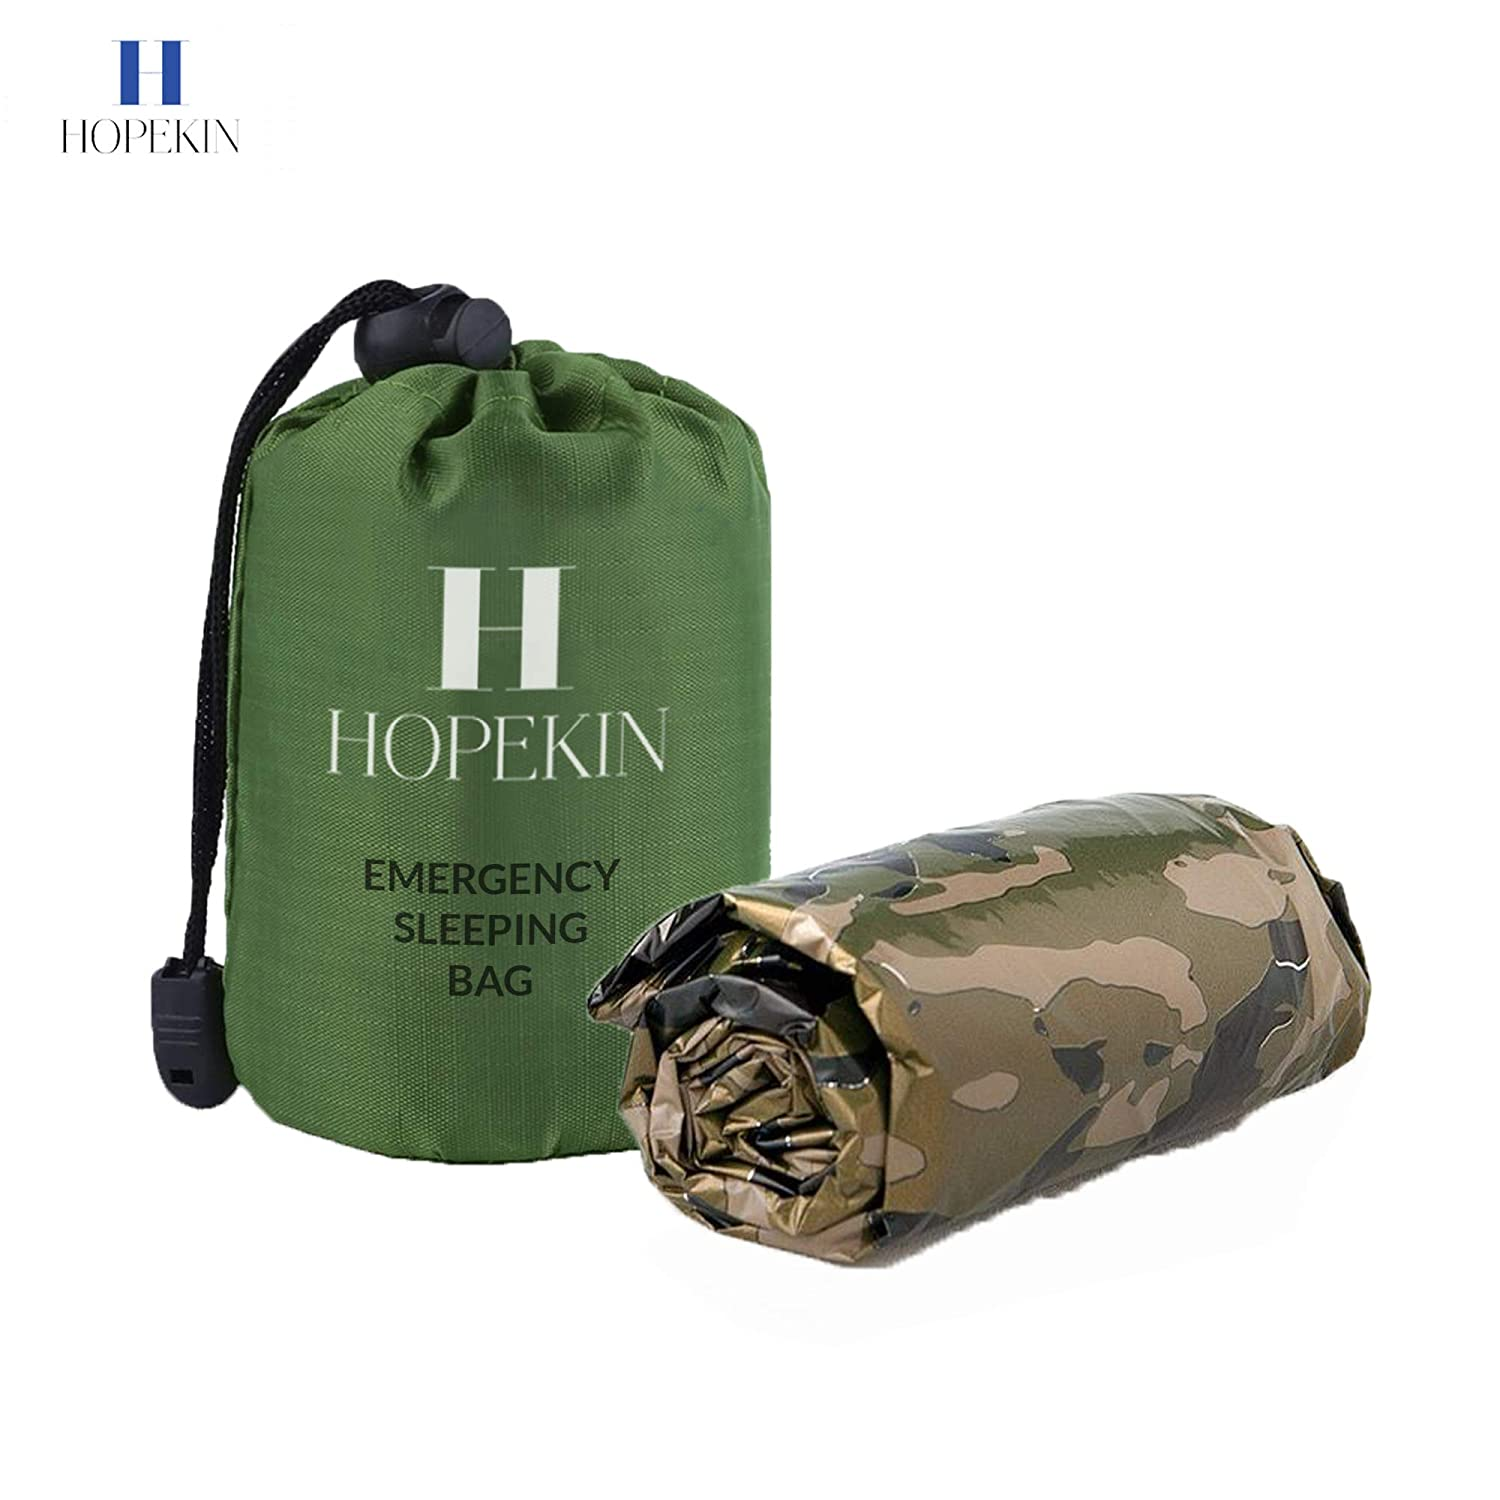 Survival Bivy Sack with Portable Drawstring Bag 100/% Waterproof Ultralight Thermal Emergency Blanket for Body-Heat Reflection HOPEKIN Compact Emergency Survival Sleeping Bag